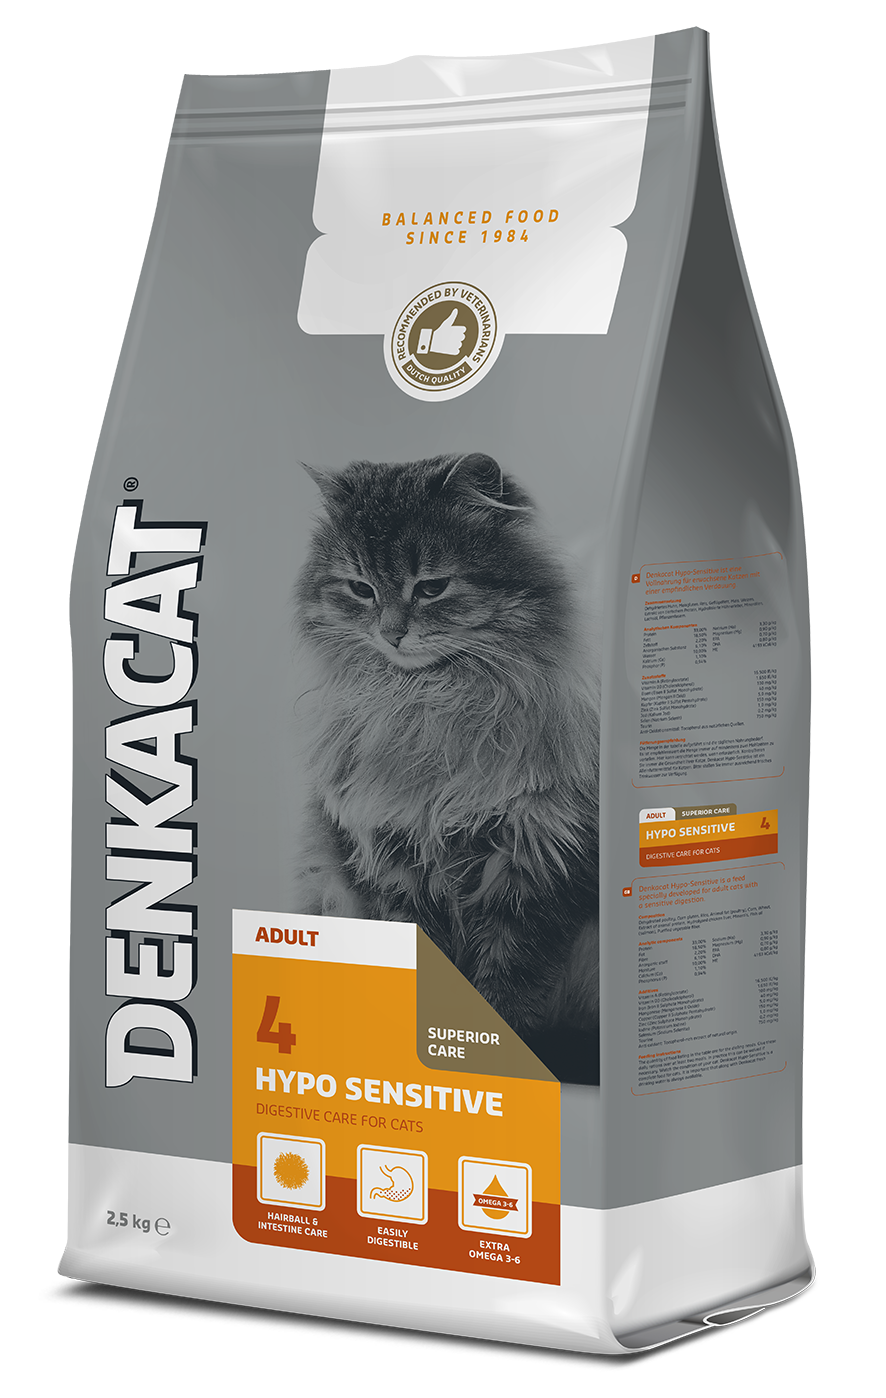 Denkacat Hypo Sensitive - 4 x 2,5 kg - Oscar and Kitty